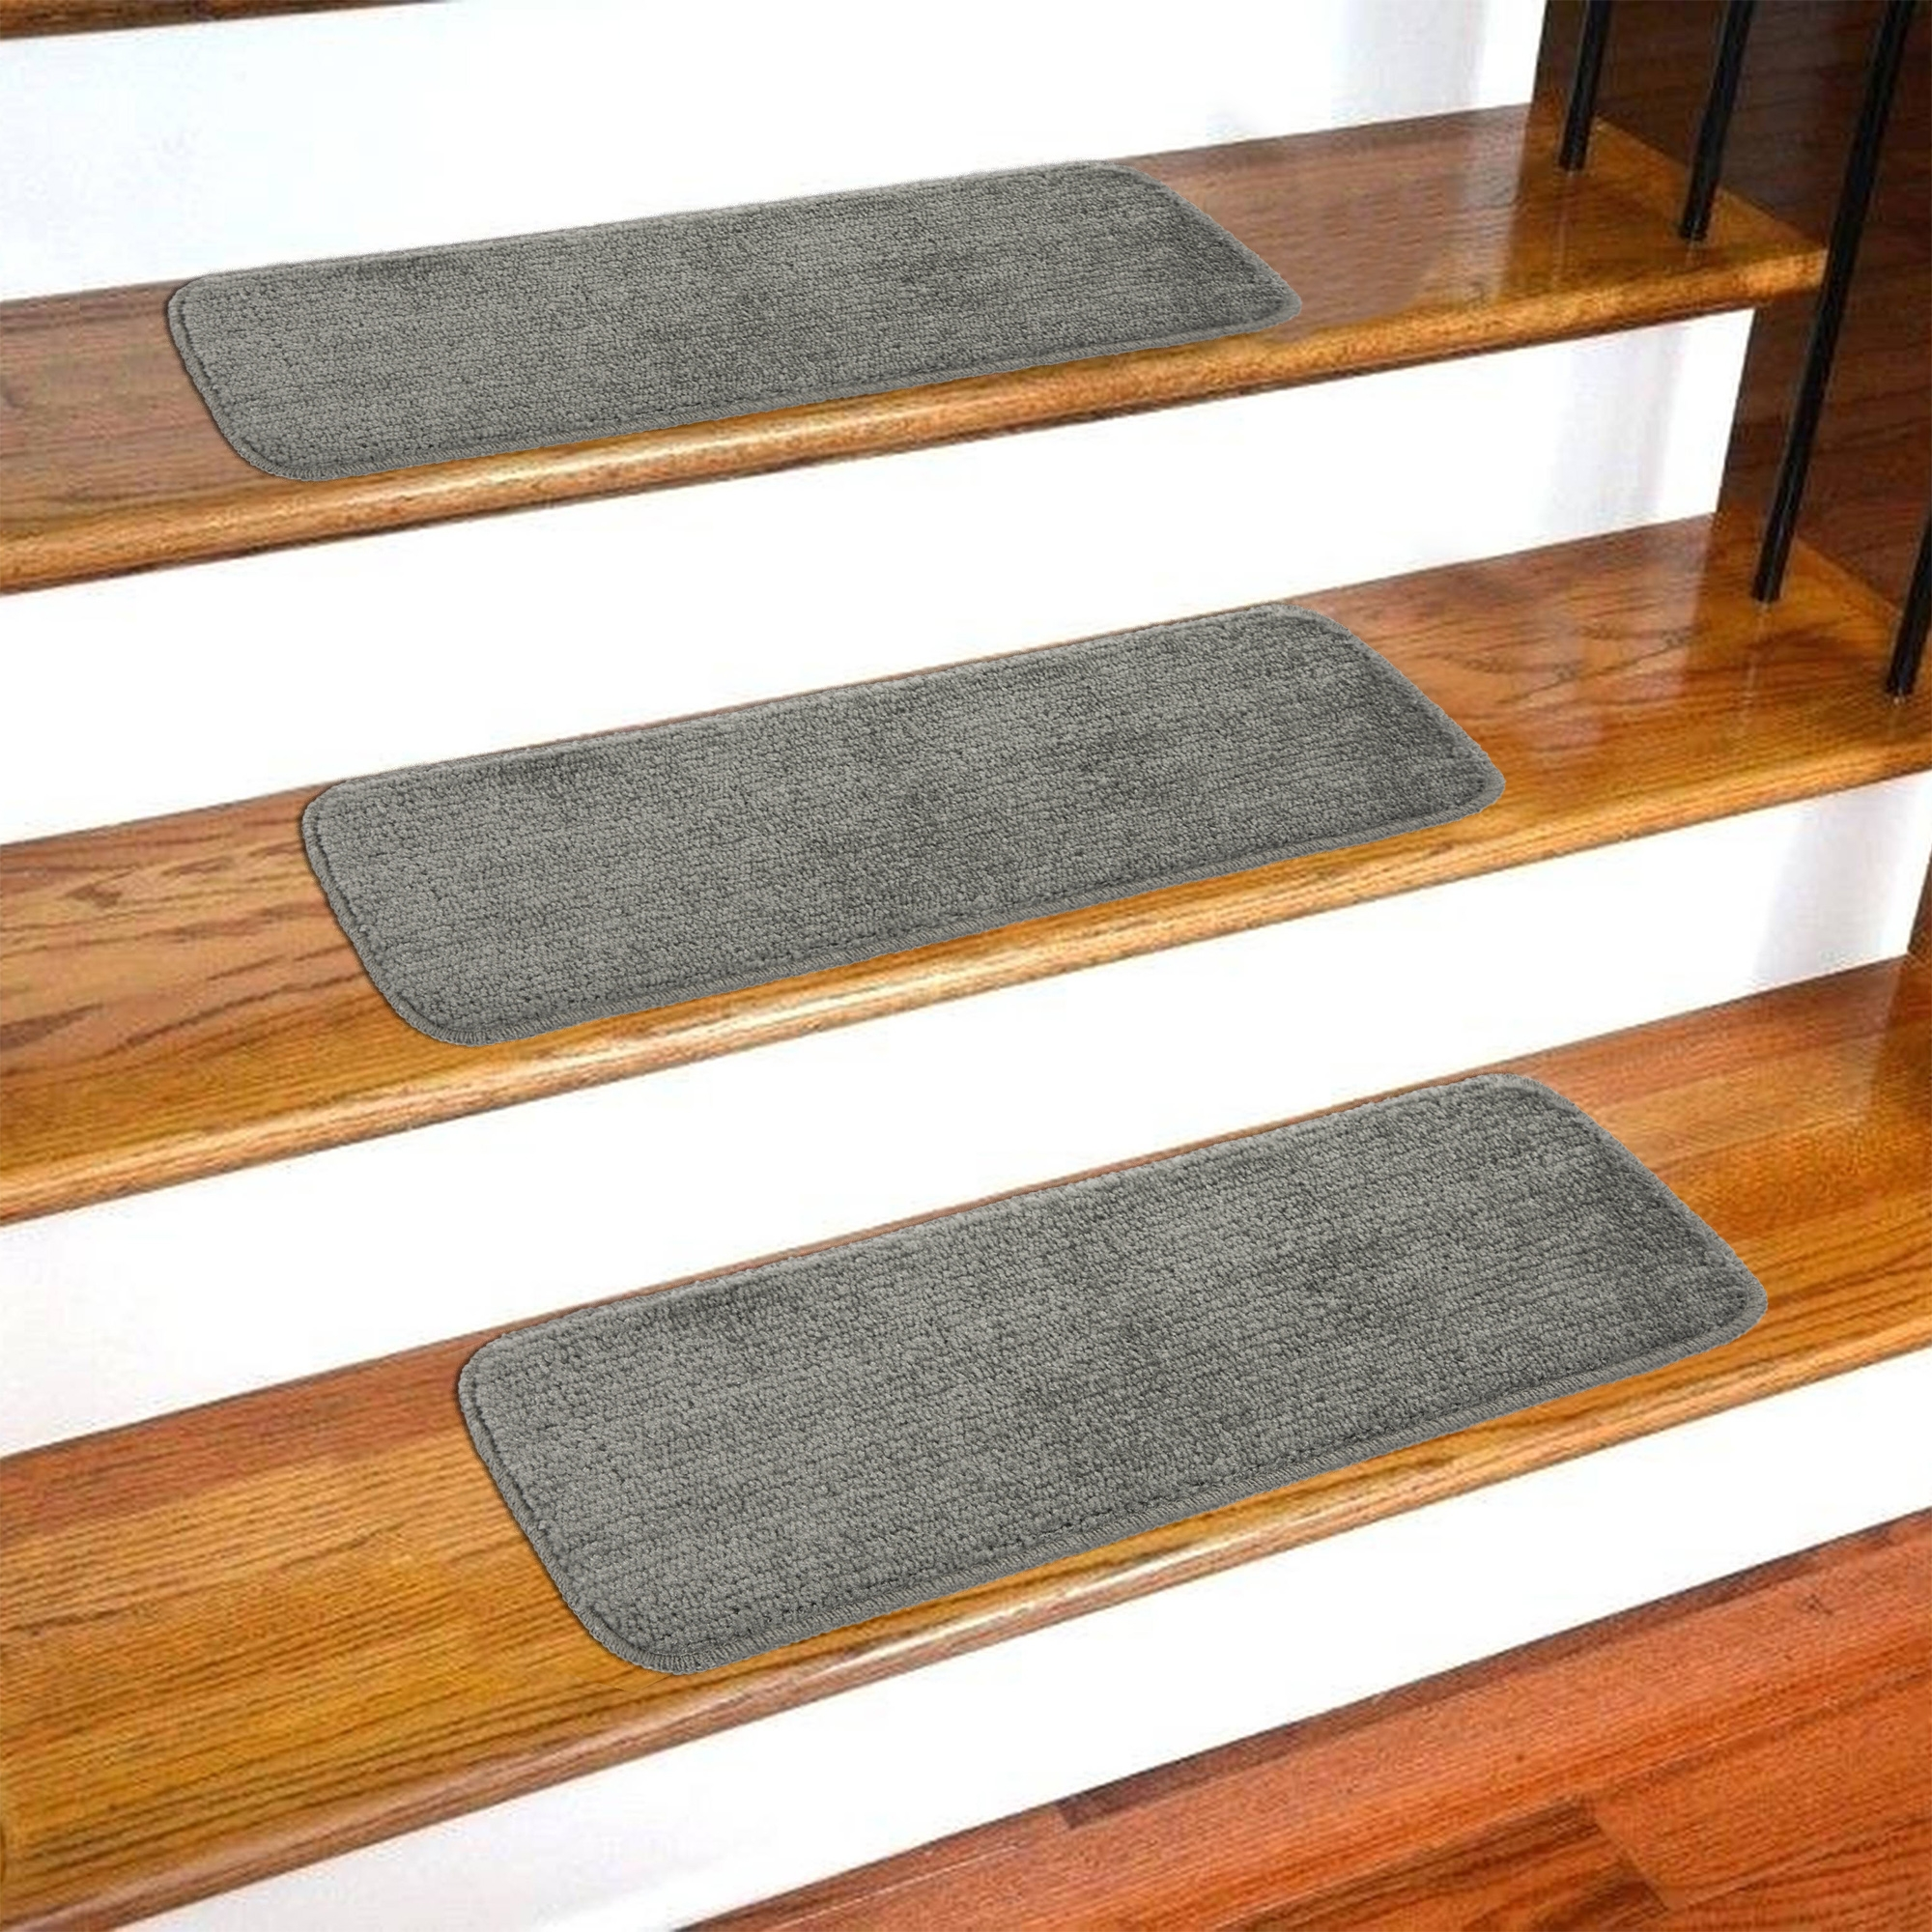 Ottomanson Softy Stair Treads Solid Skid Resistant Rubber Backing   Wrapping Stair Treads With Carpet   Stairway Remodel   True Bullnose   Non Slip   Wood Stairs   Oak Valley